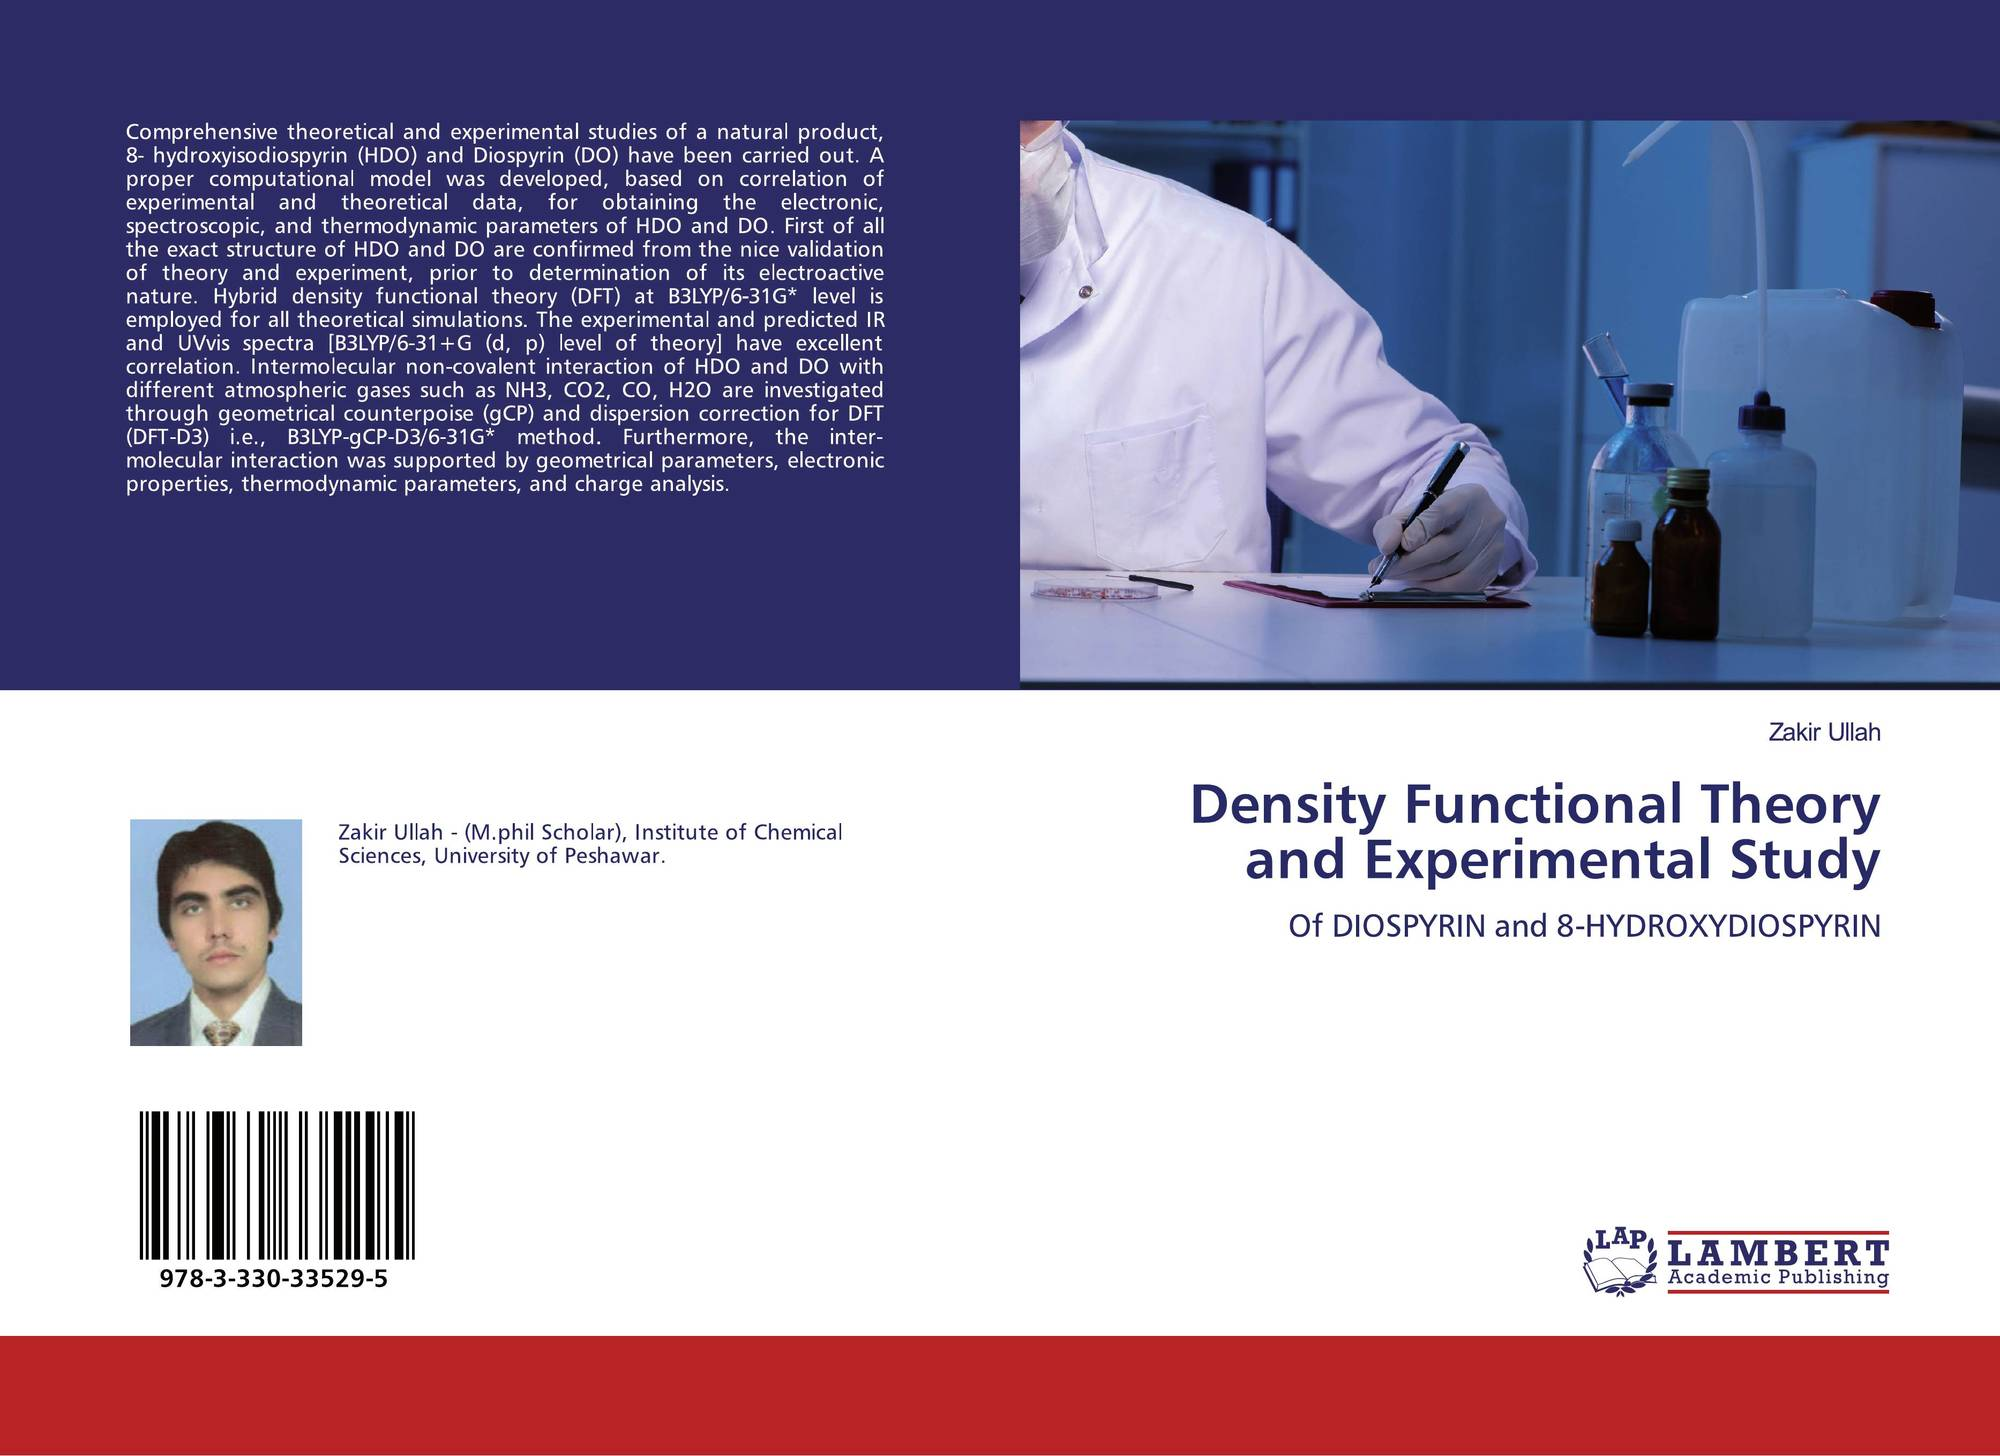 Density Functional Theory and Experimental Study, 978-3-330